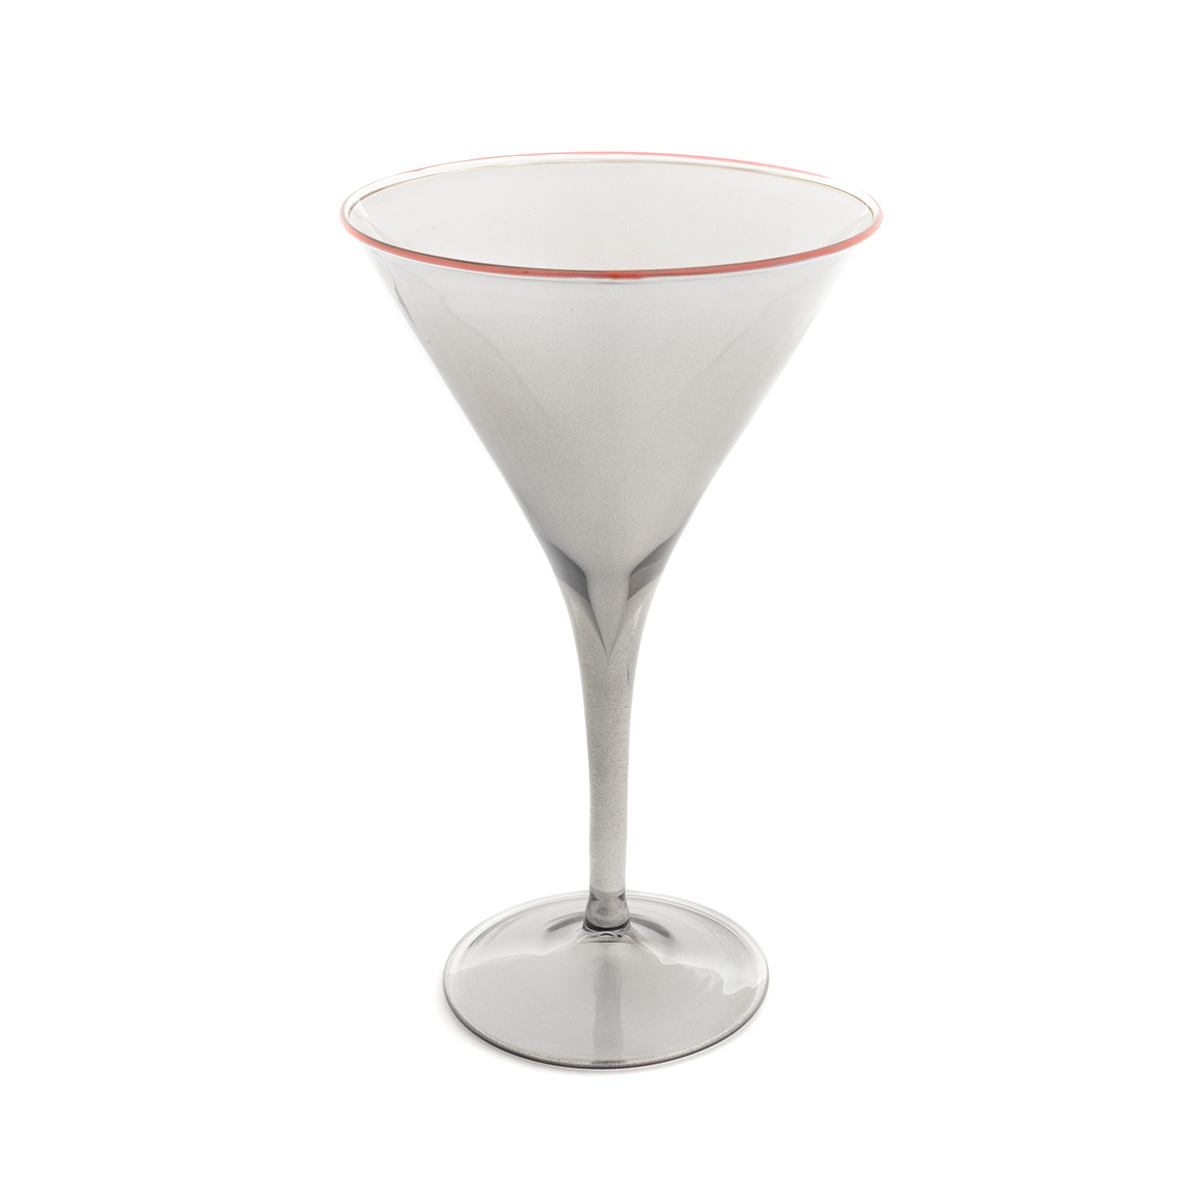 martini_fume_grey_red_rim_murano_design_drink_glass_giberto